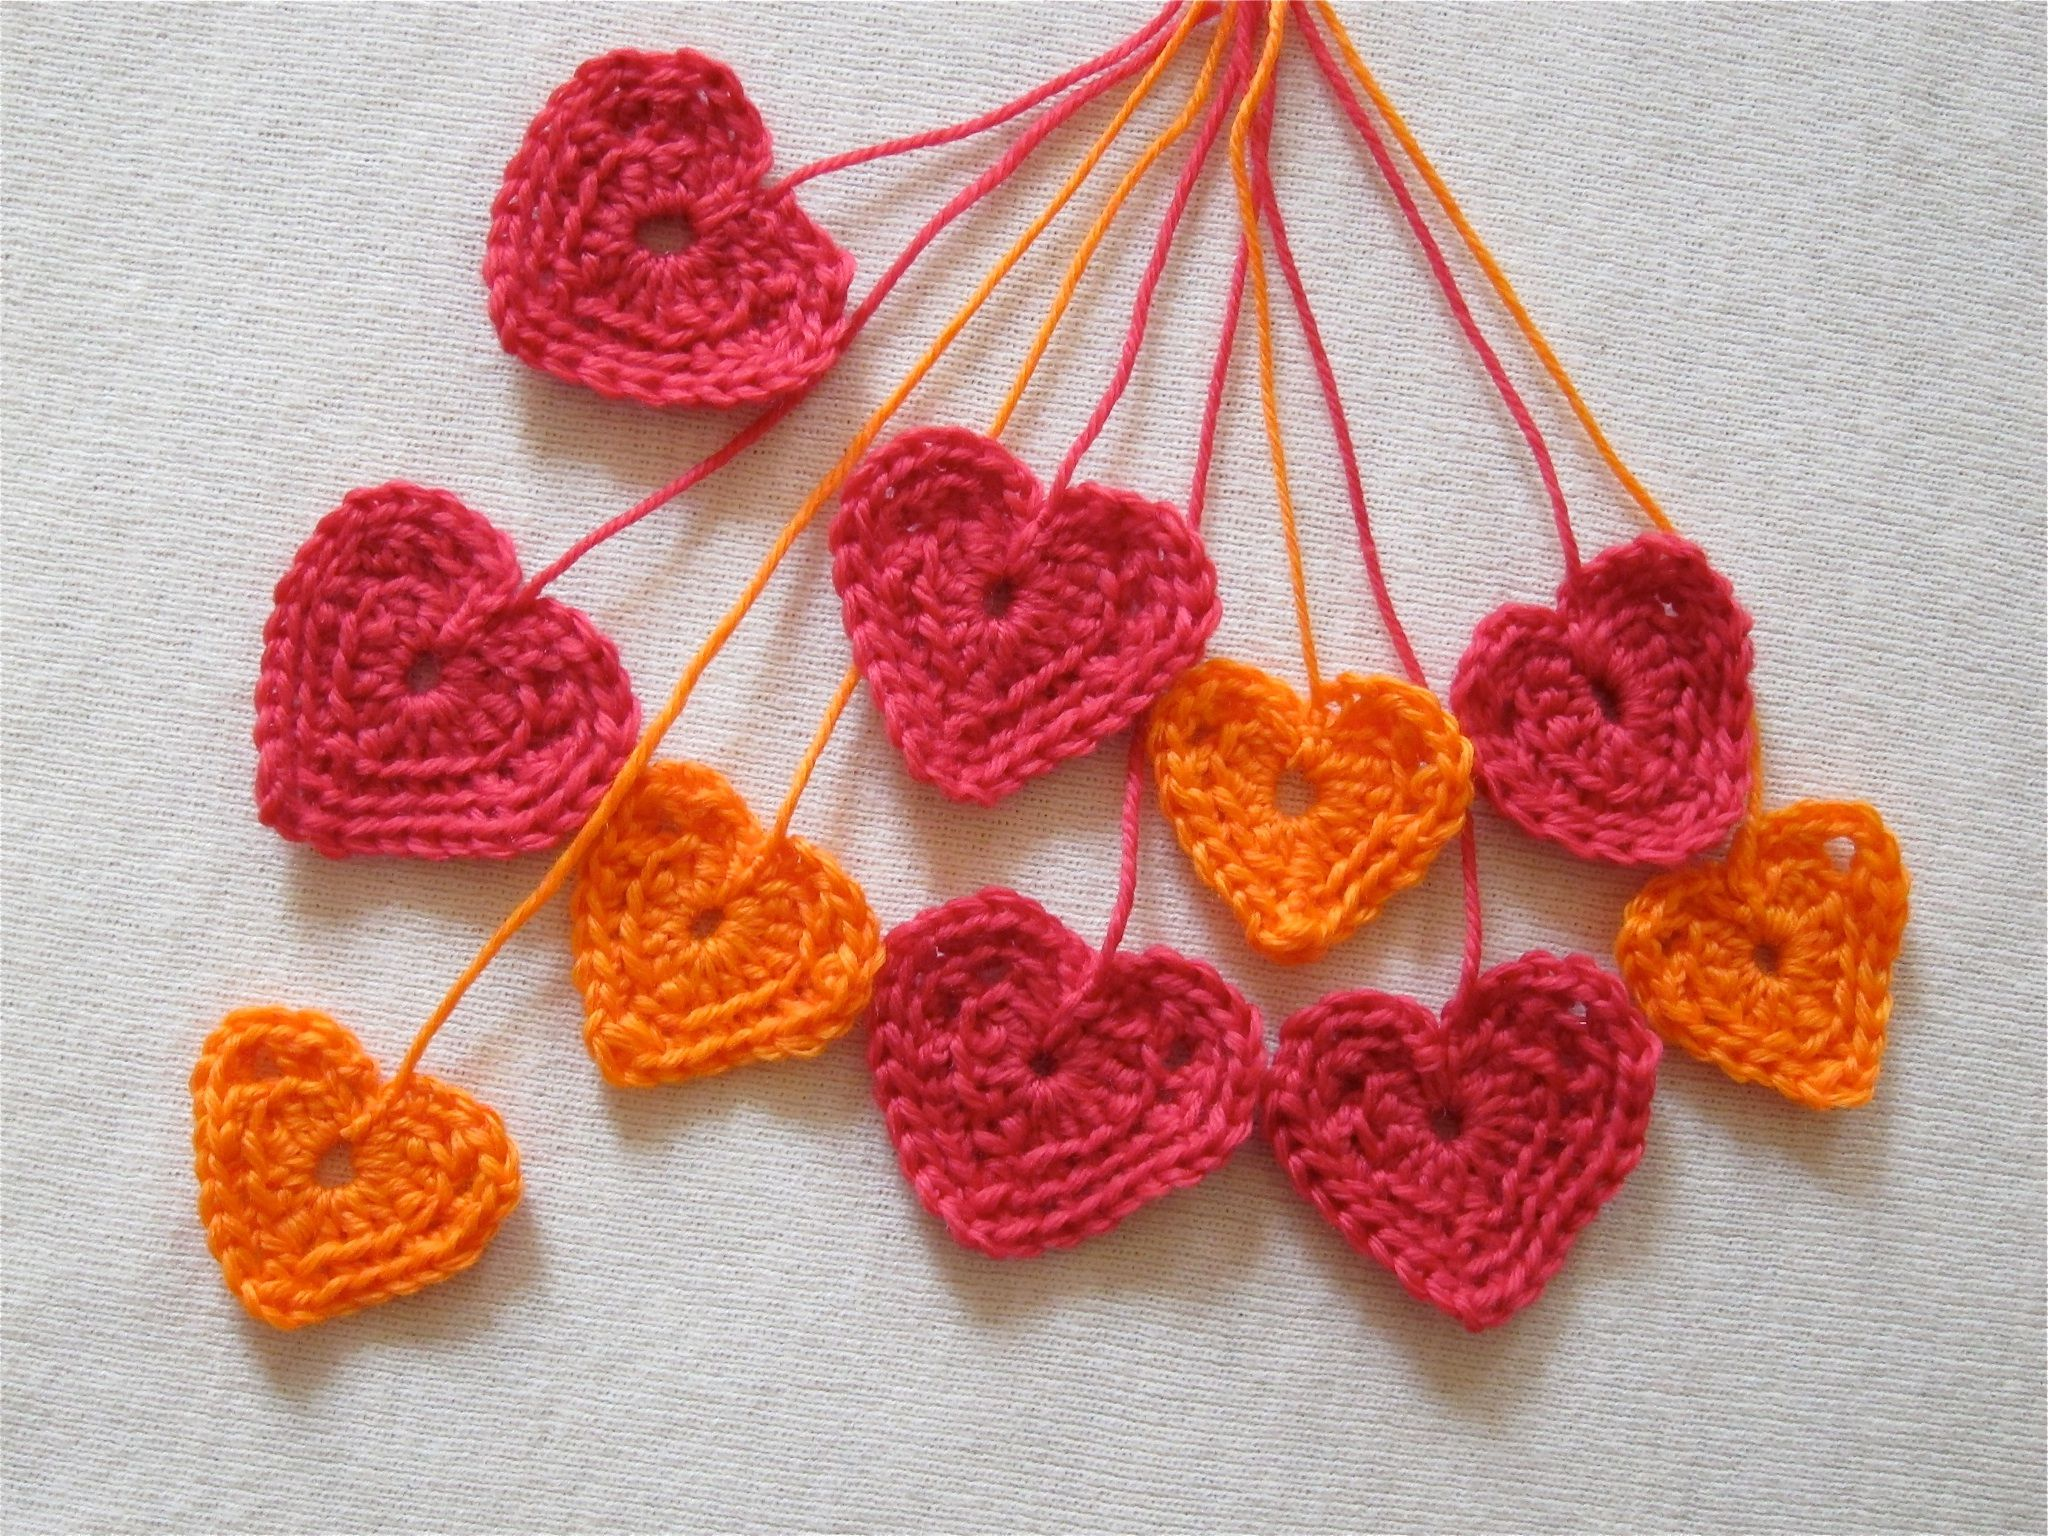 10 Crochet Heart Patterns For Valentine S Day